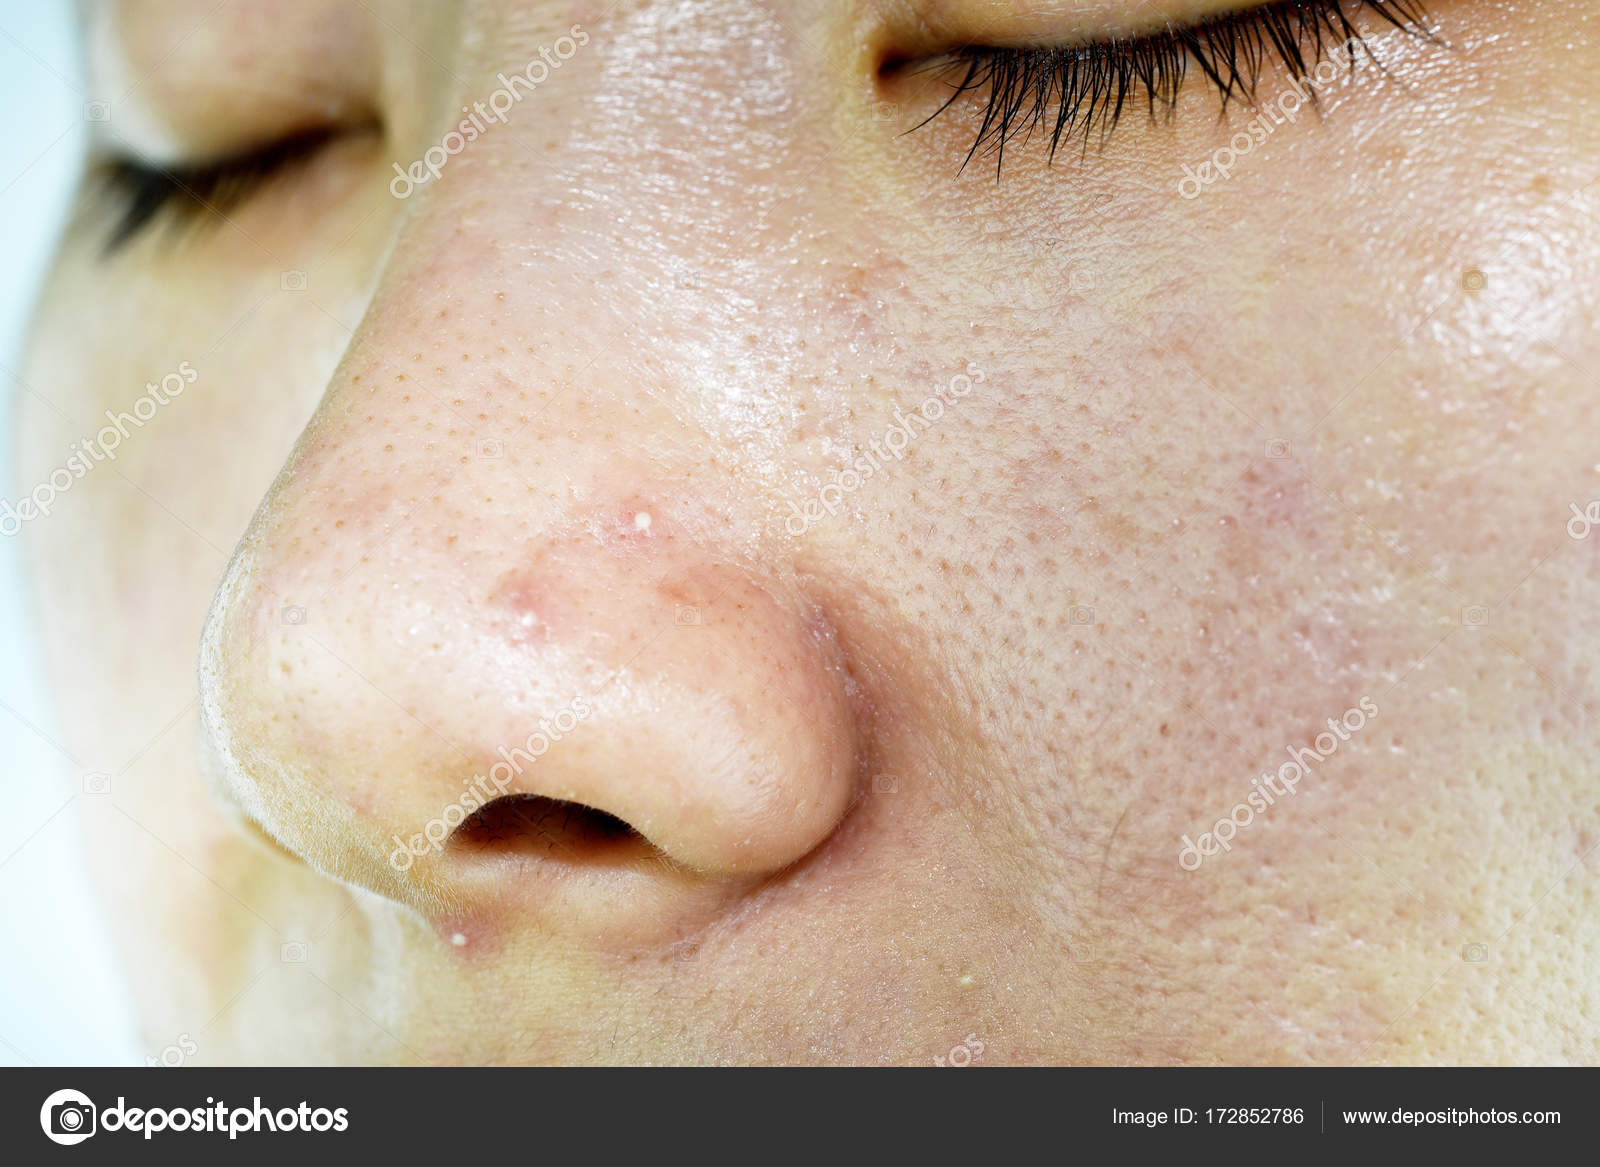 Skin Problem With Acne Diseases Close Up Woman Face With Whitehead Pimples On Nose Scar And Oily Greasy Face Beauty Concept Stock Photo C Artfully79 172852786